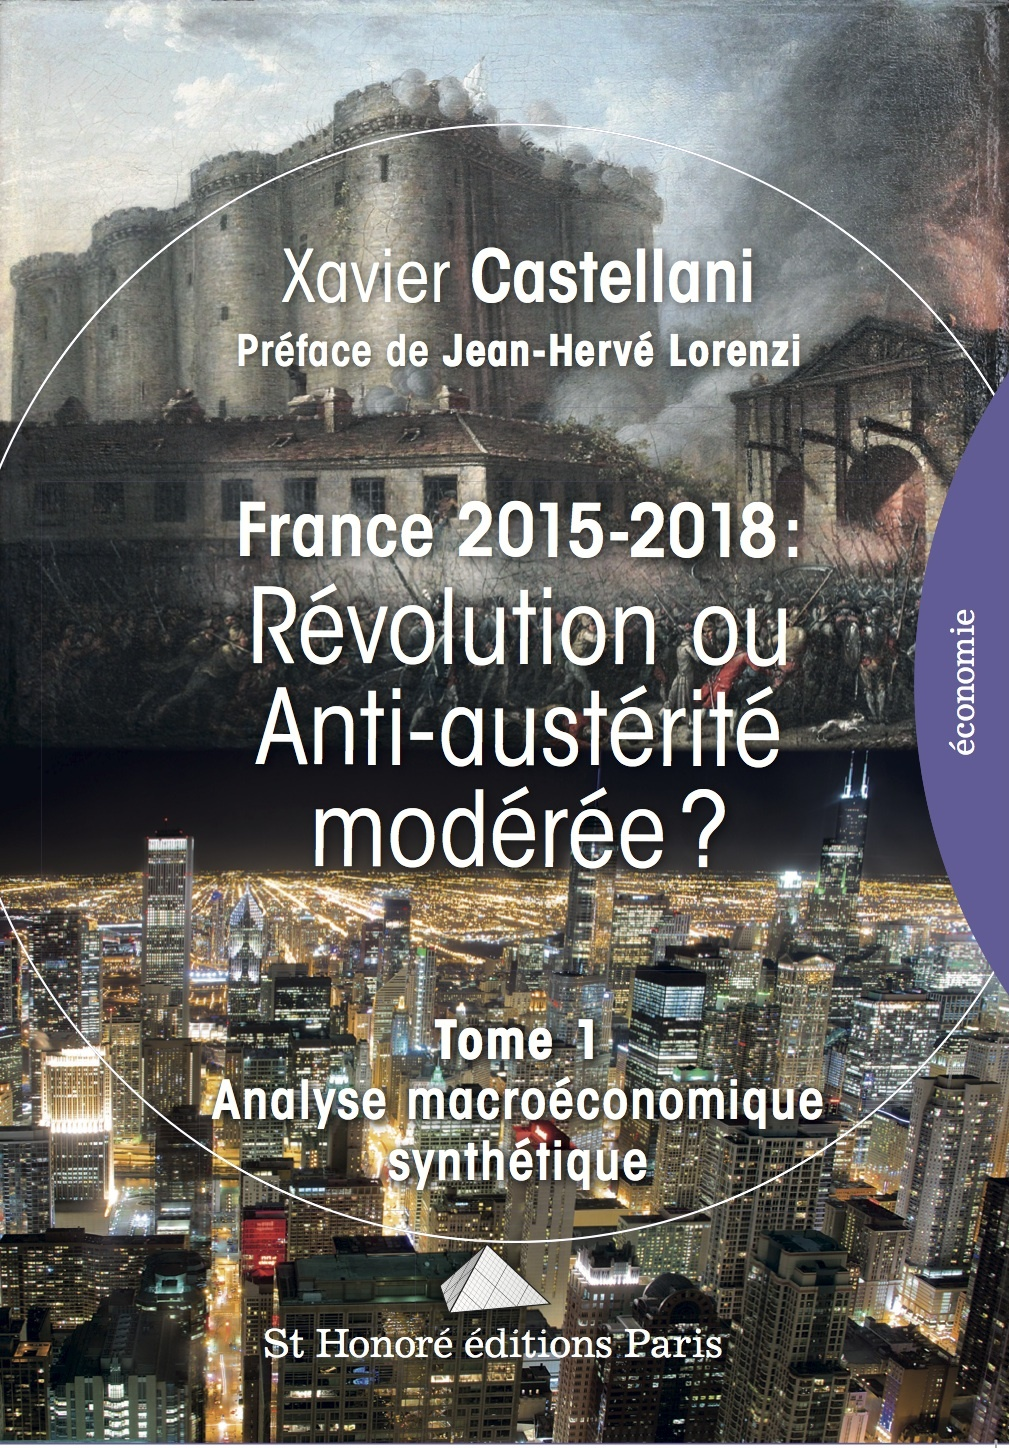 FRANCE 2015 - 2018 : REVOLUTION OU ANTI-AUSTERITE MODEREE ? TOME 1